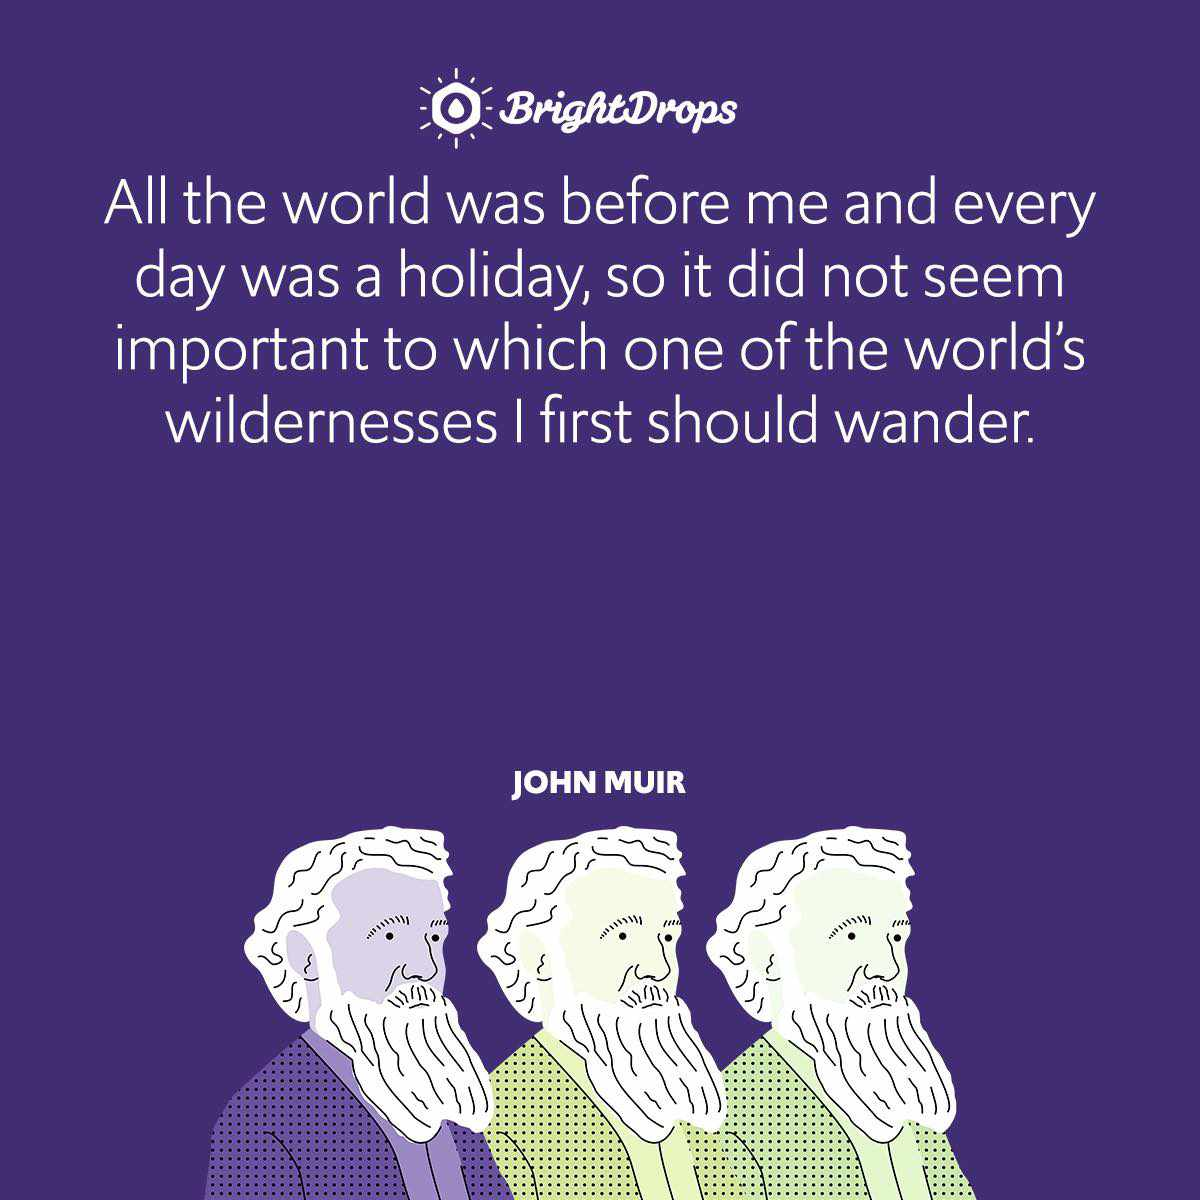 All the world was before me and every day was a holiday, so it did not seem important to which one of the world's wildernesses I first should wander.